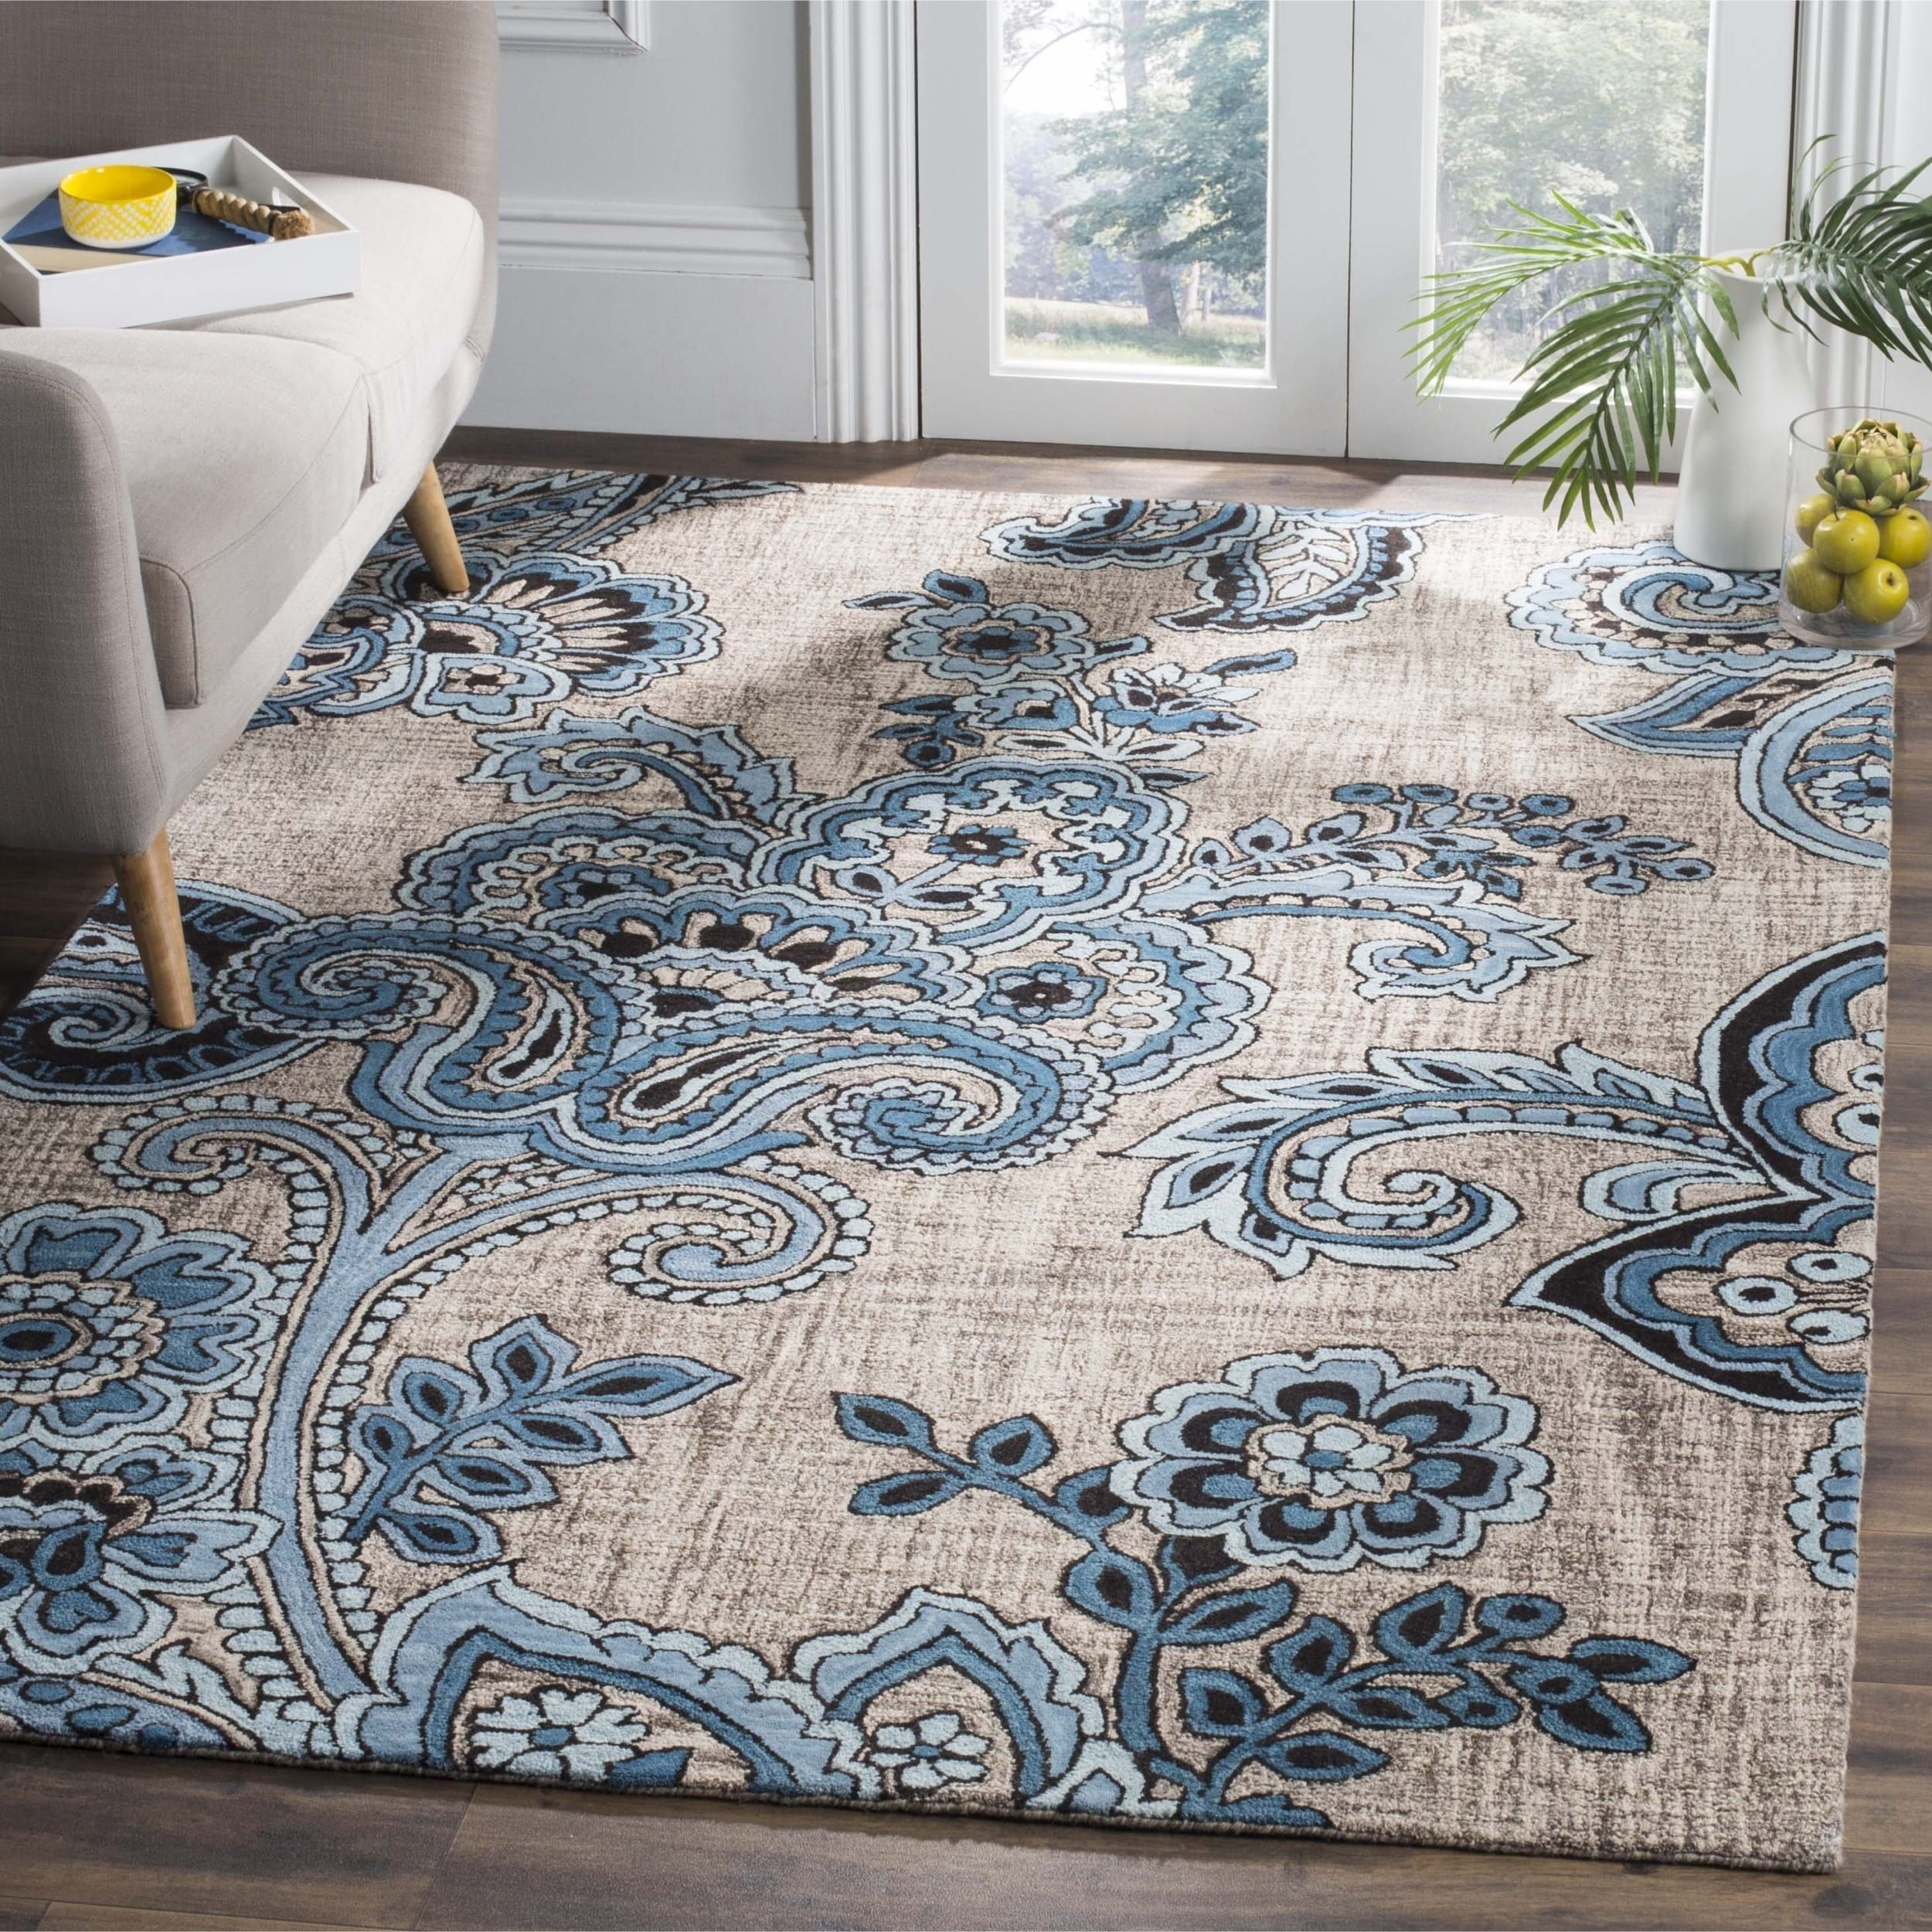 Overstock Com Online Shopping Bedding Furniture Electronics Jewelry Clothing More Rugs Area Rugs Wool Area Rugs